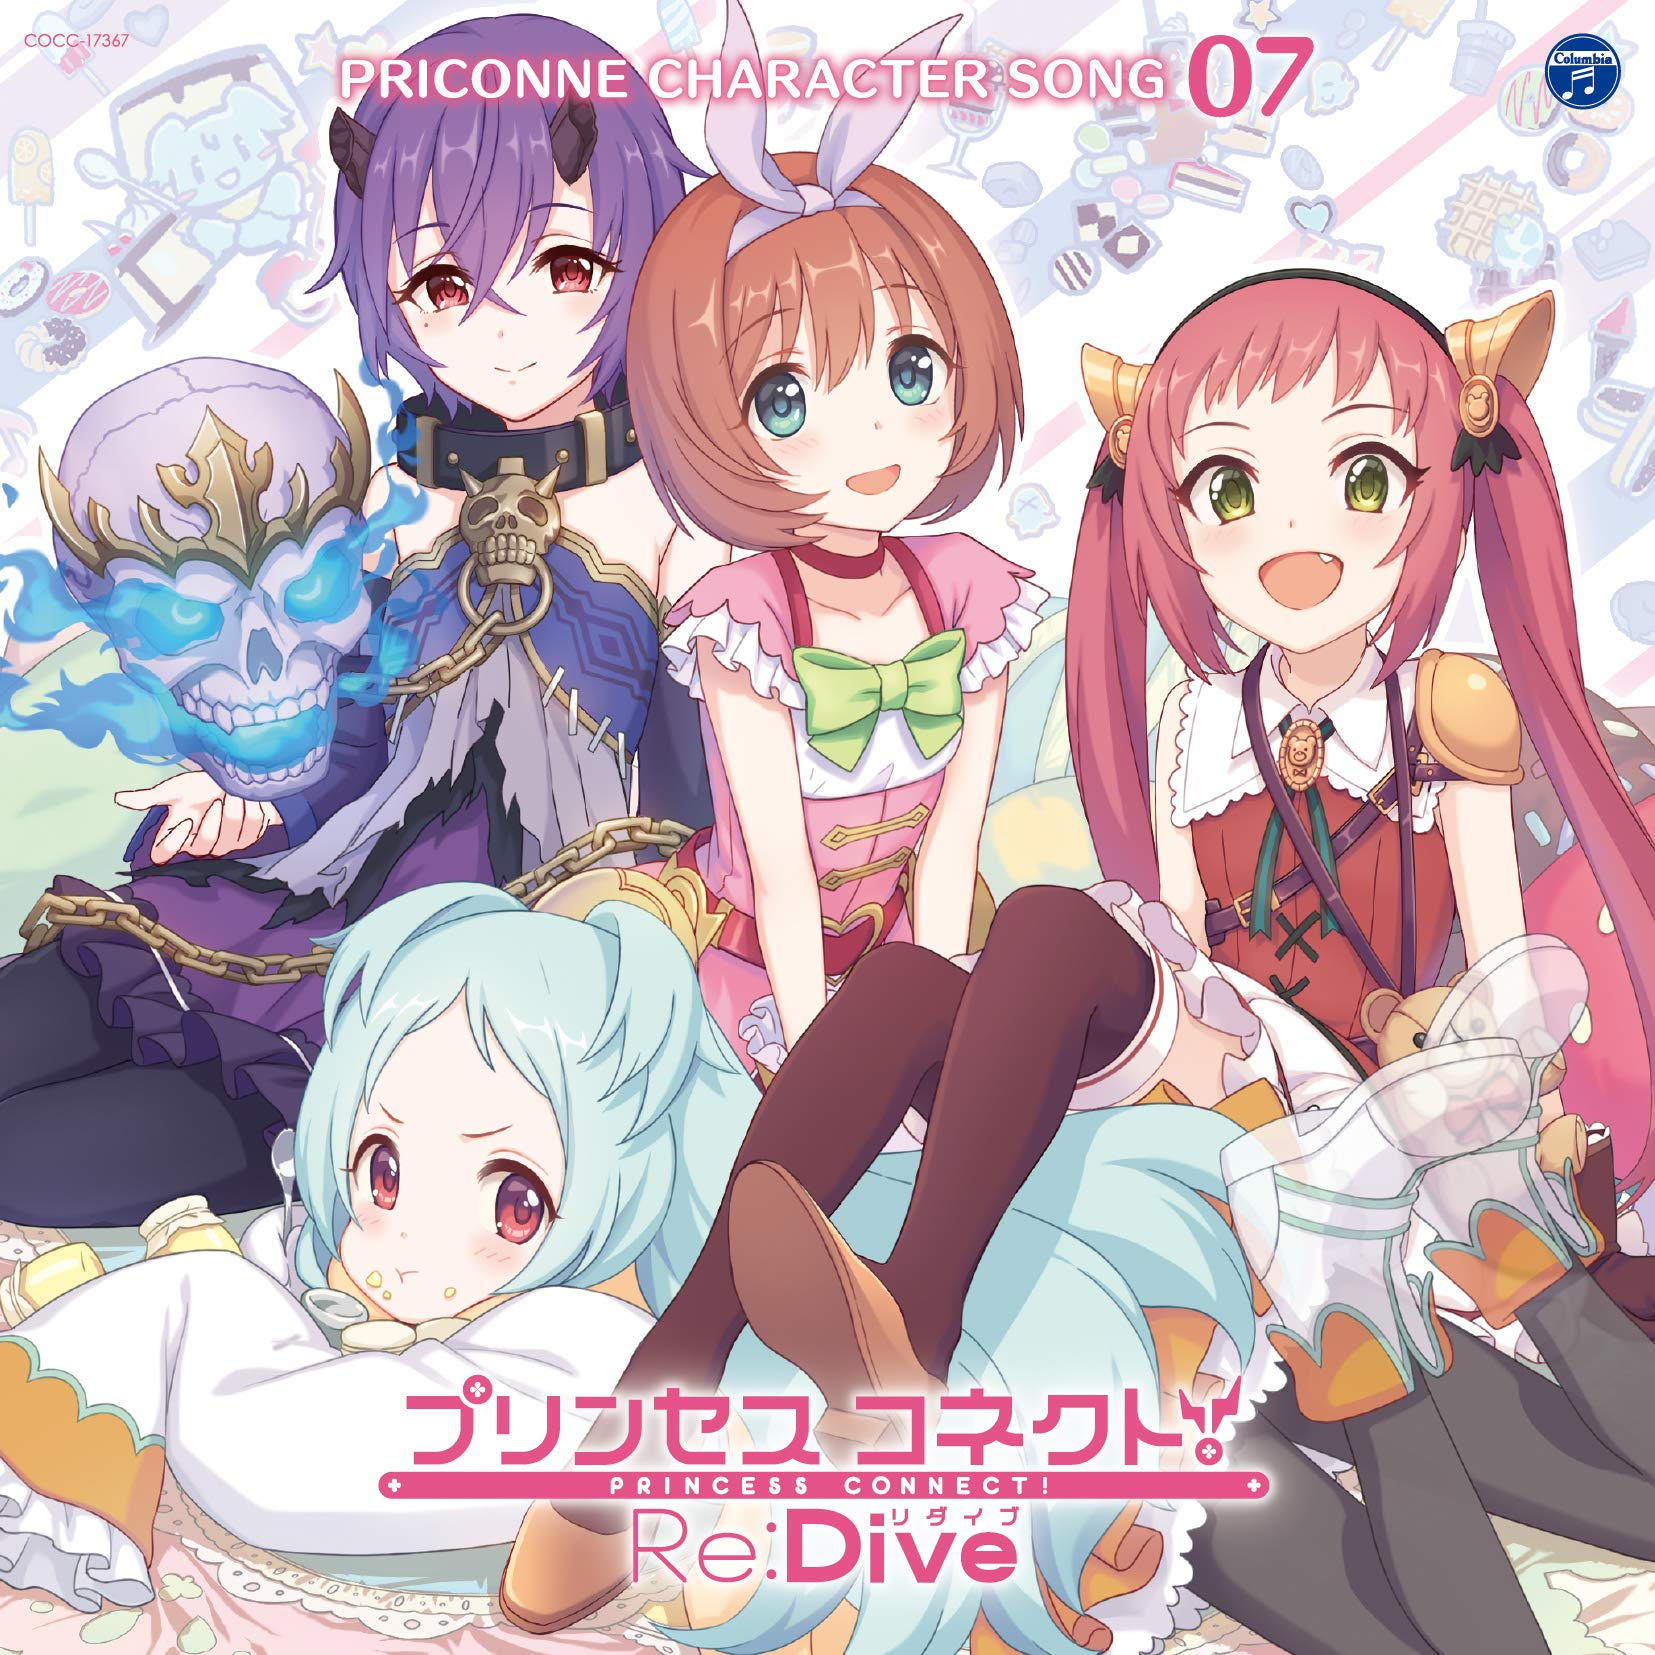 プリンセスコネクト!Re:Dive PRICONNE CHARACTER SONG 07